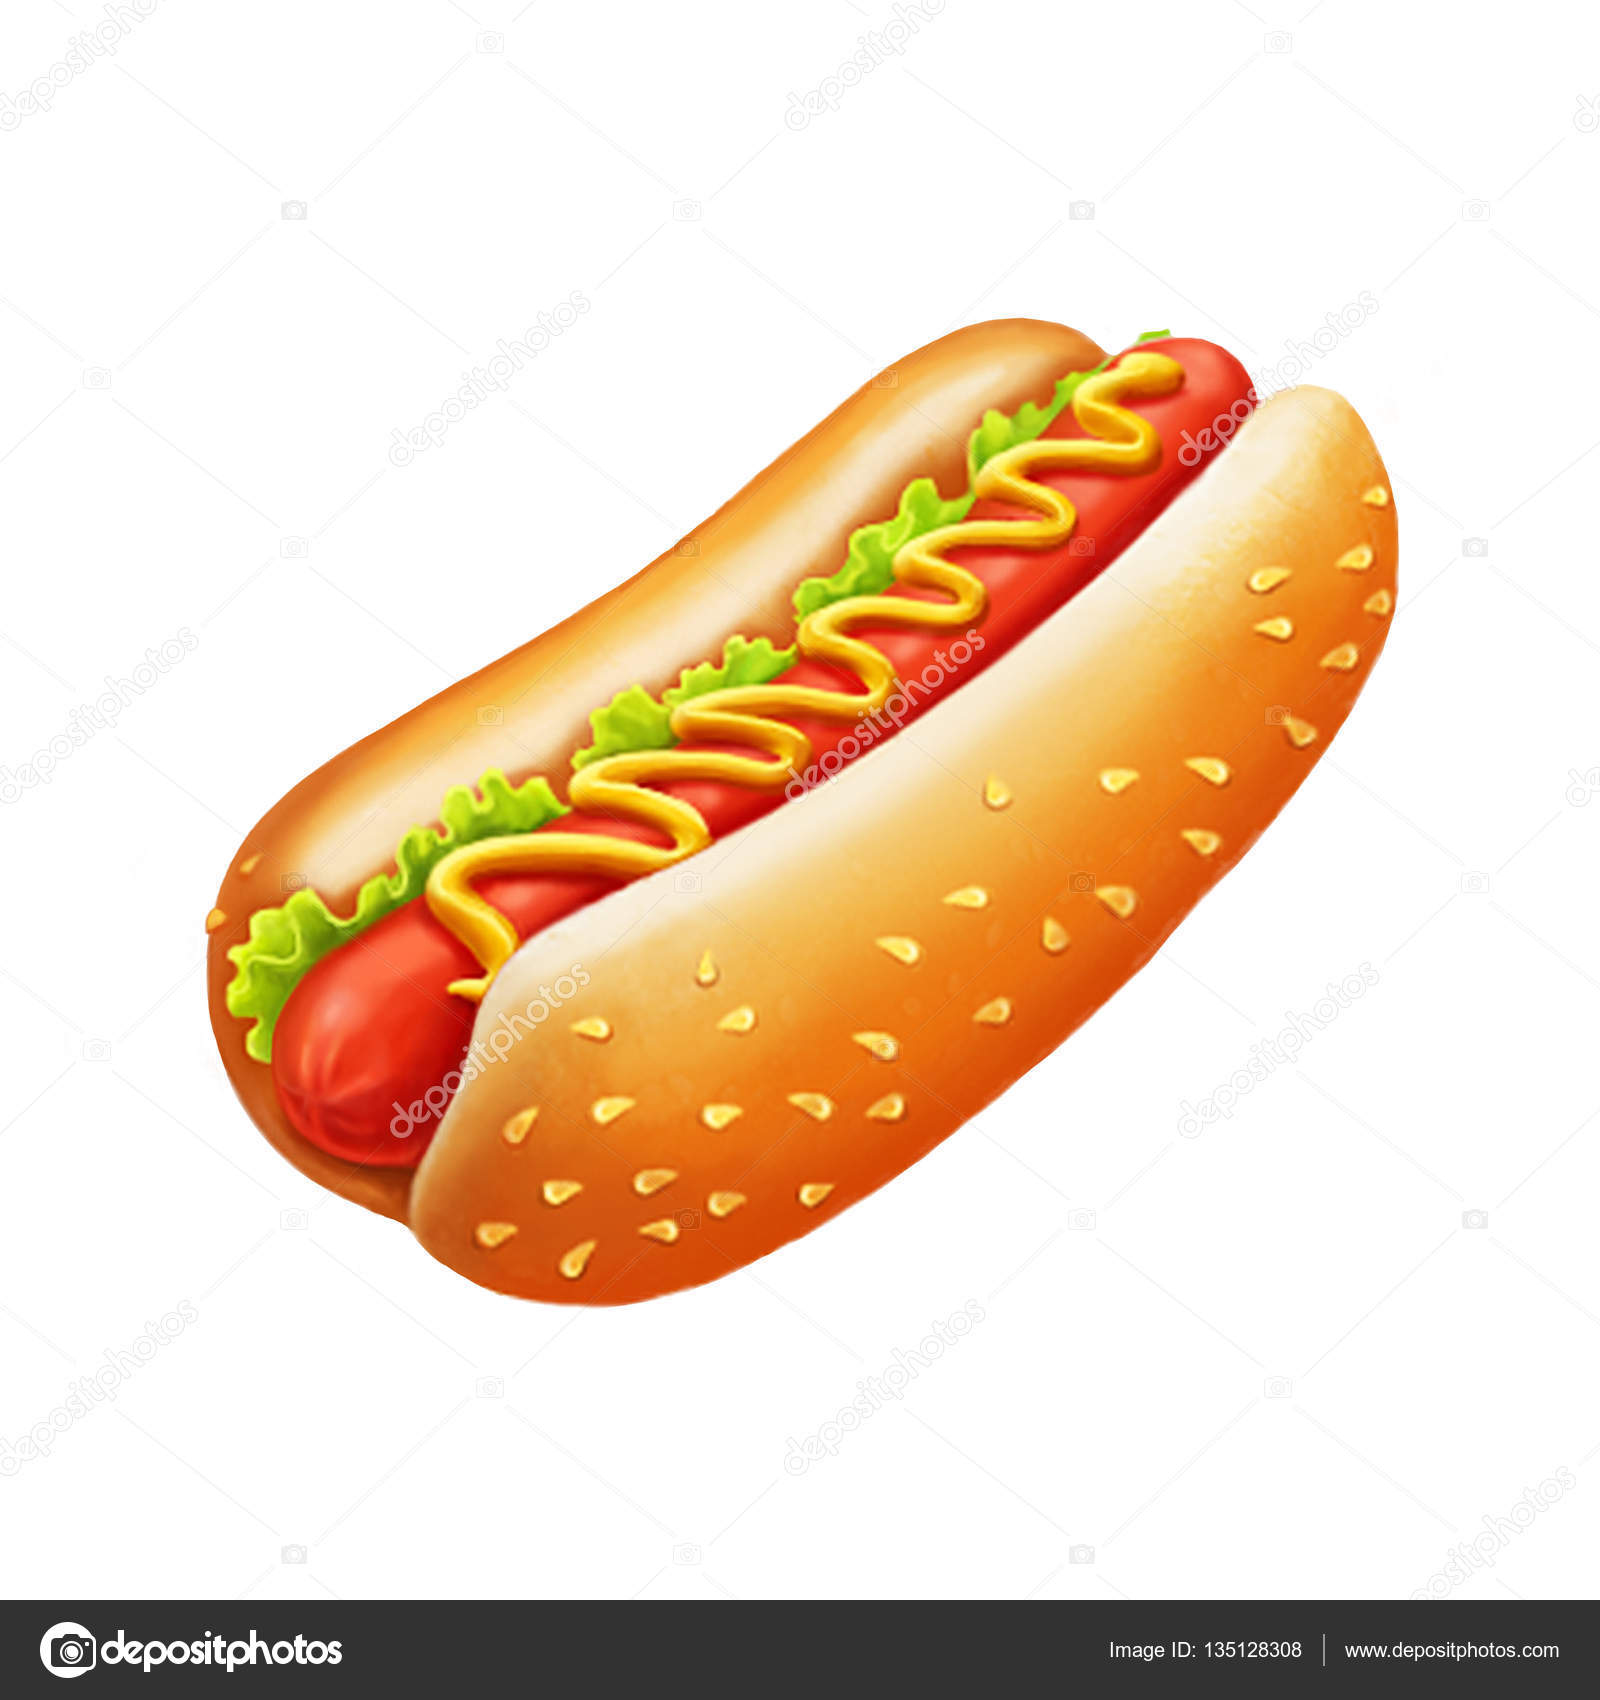 Picture Of A Hot Dog Cartoon